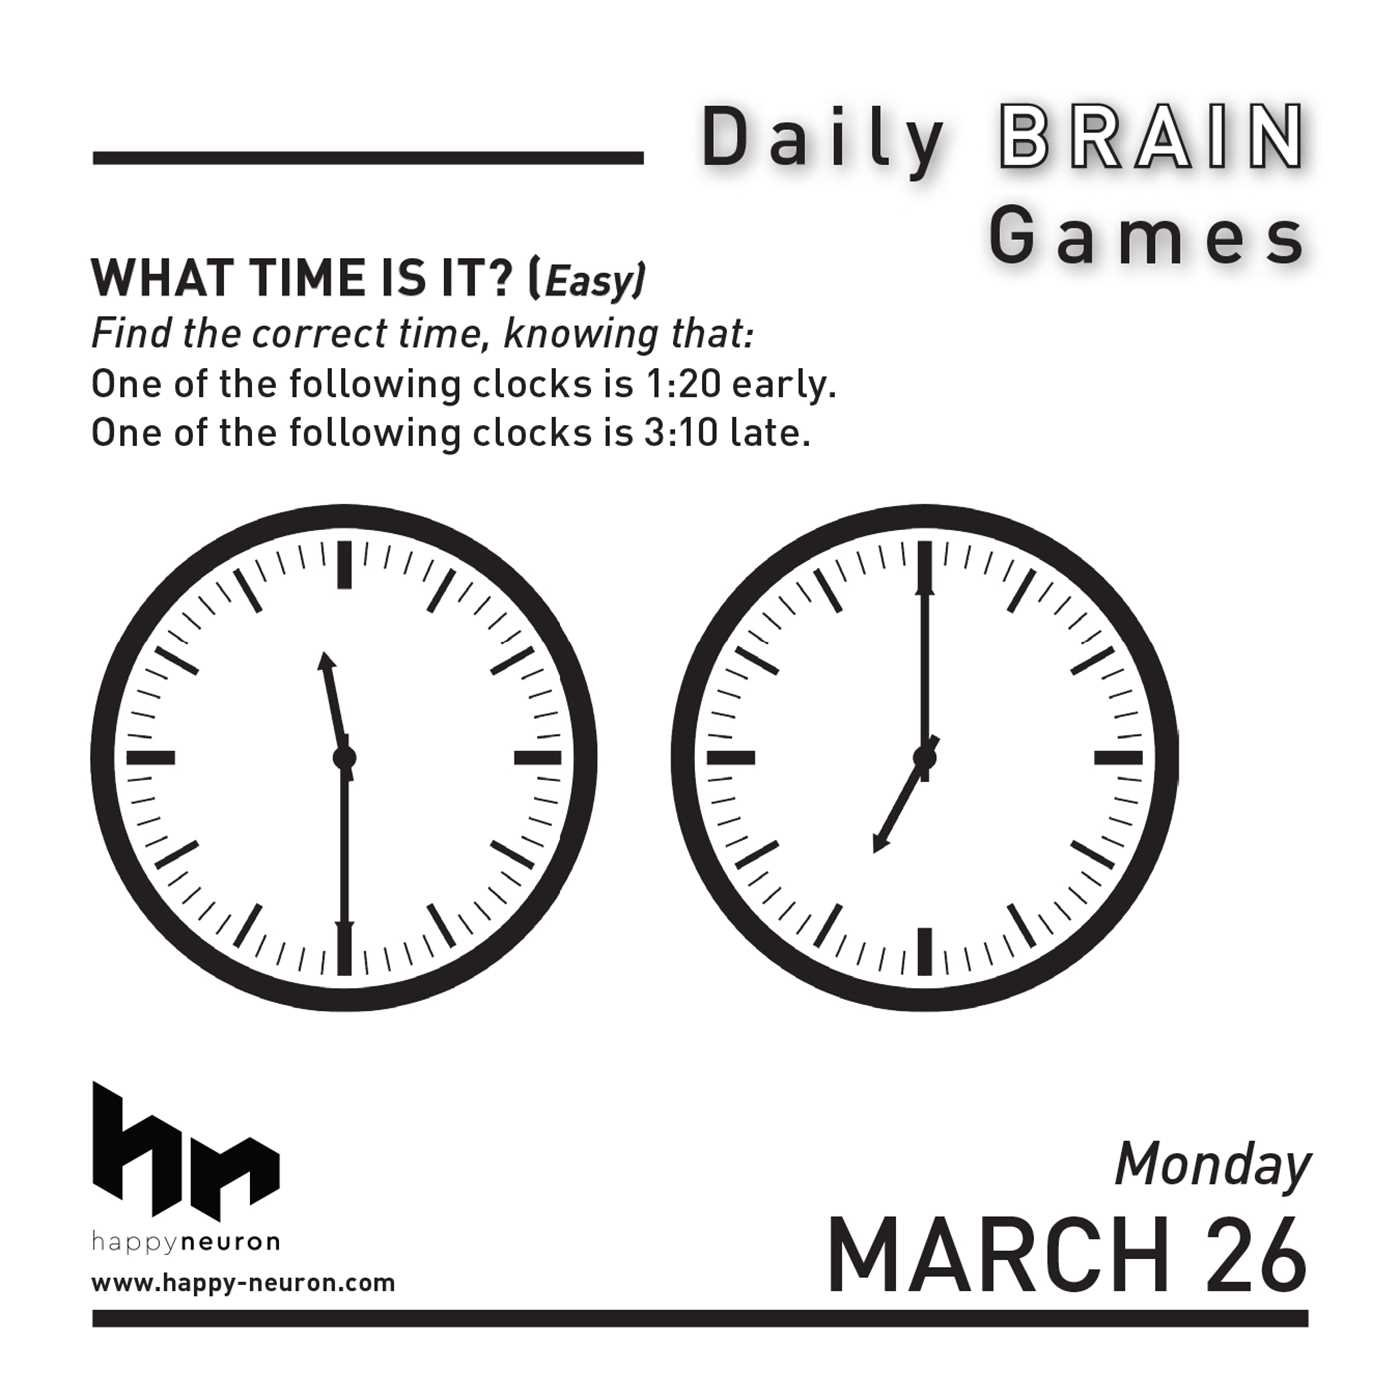 Daily Brain Games 2018 Day-to-Day Calendar: Amazon co uk